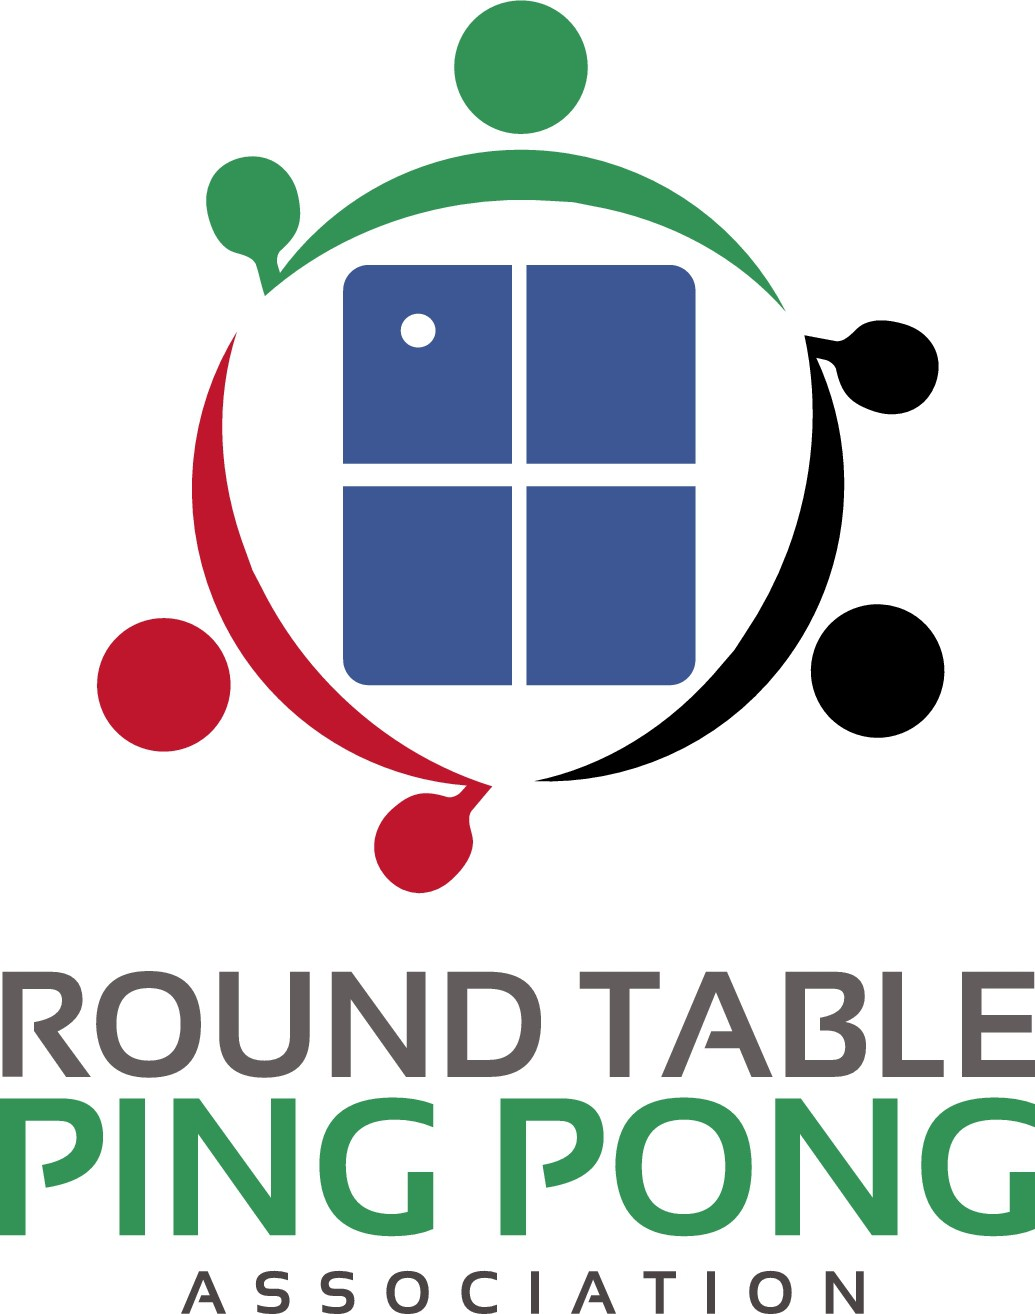 New Ping Pong Association needs defining logo!